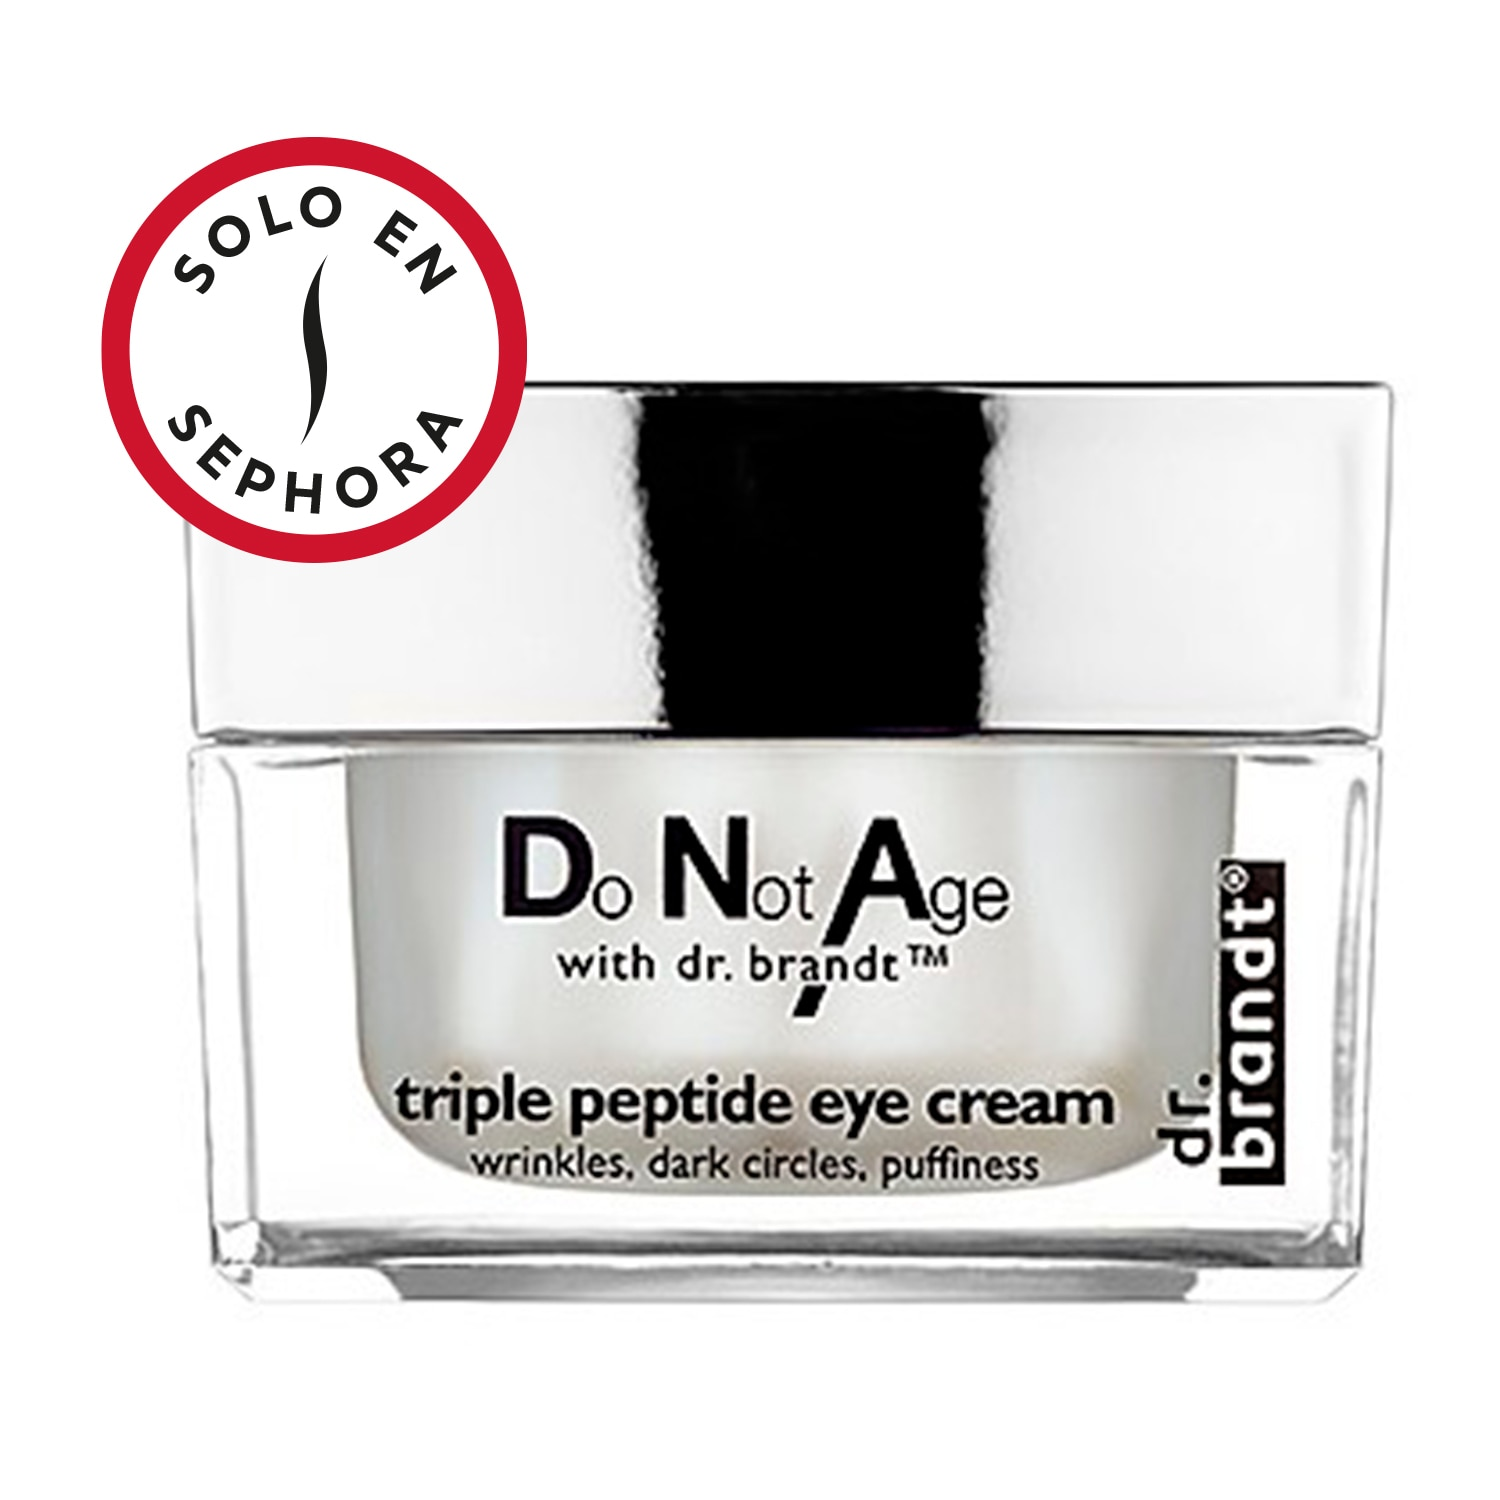 DO NOT AGE TRIPLE PEPTIDE EYE CREAM